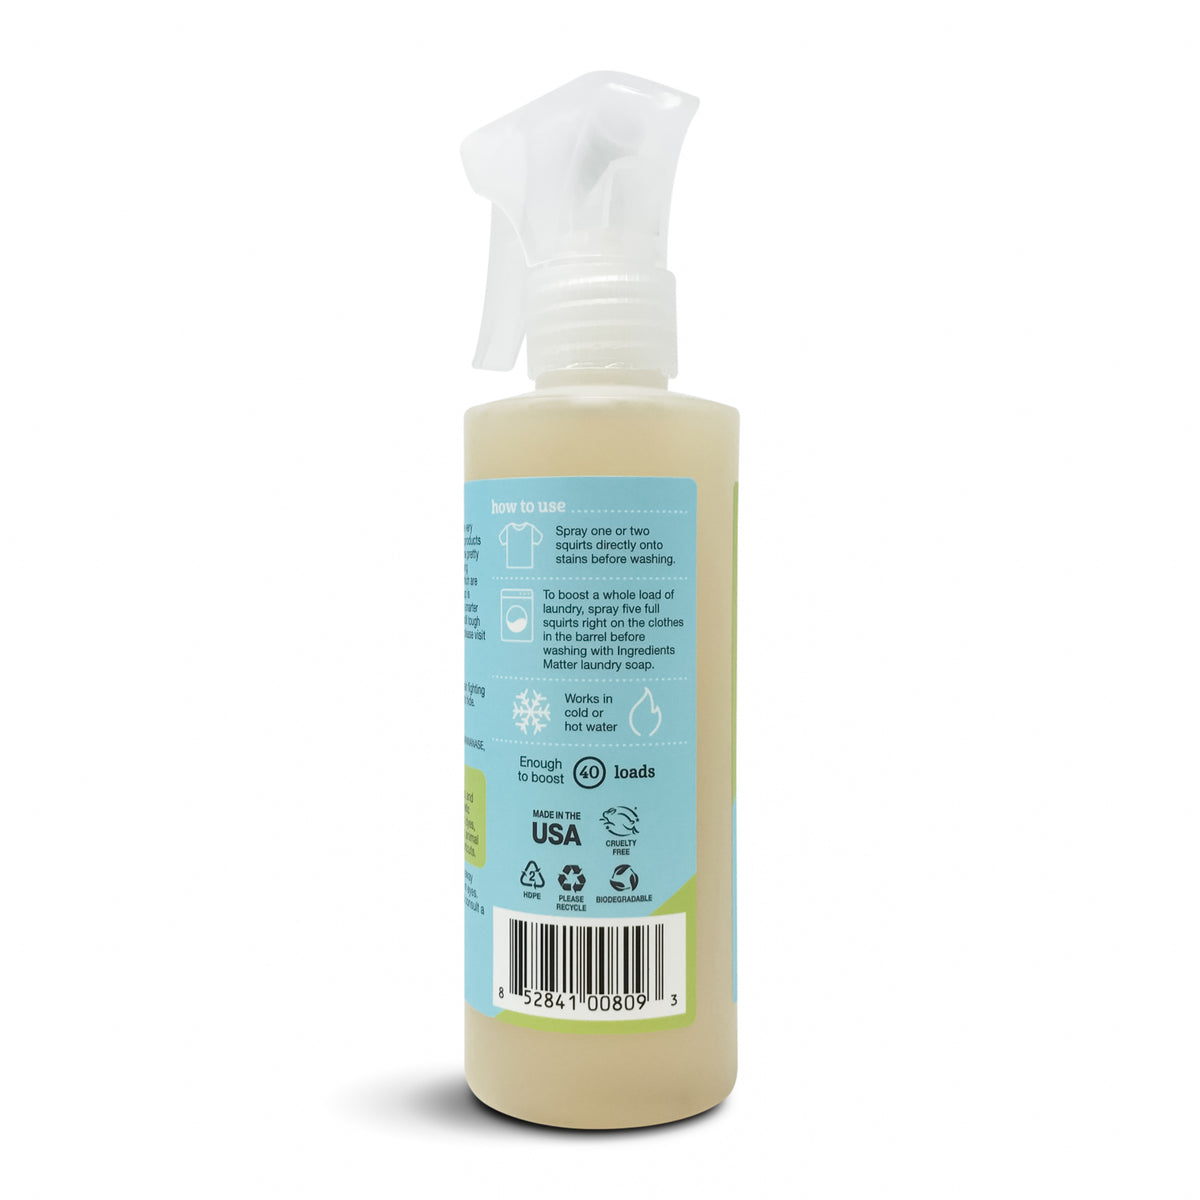 Laundry Booster and Stain Eliminator, Fragrance-free, back of bottle with spray nozzle